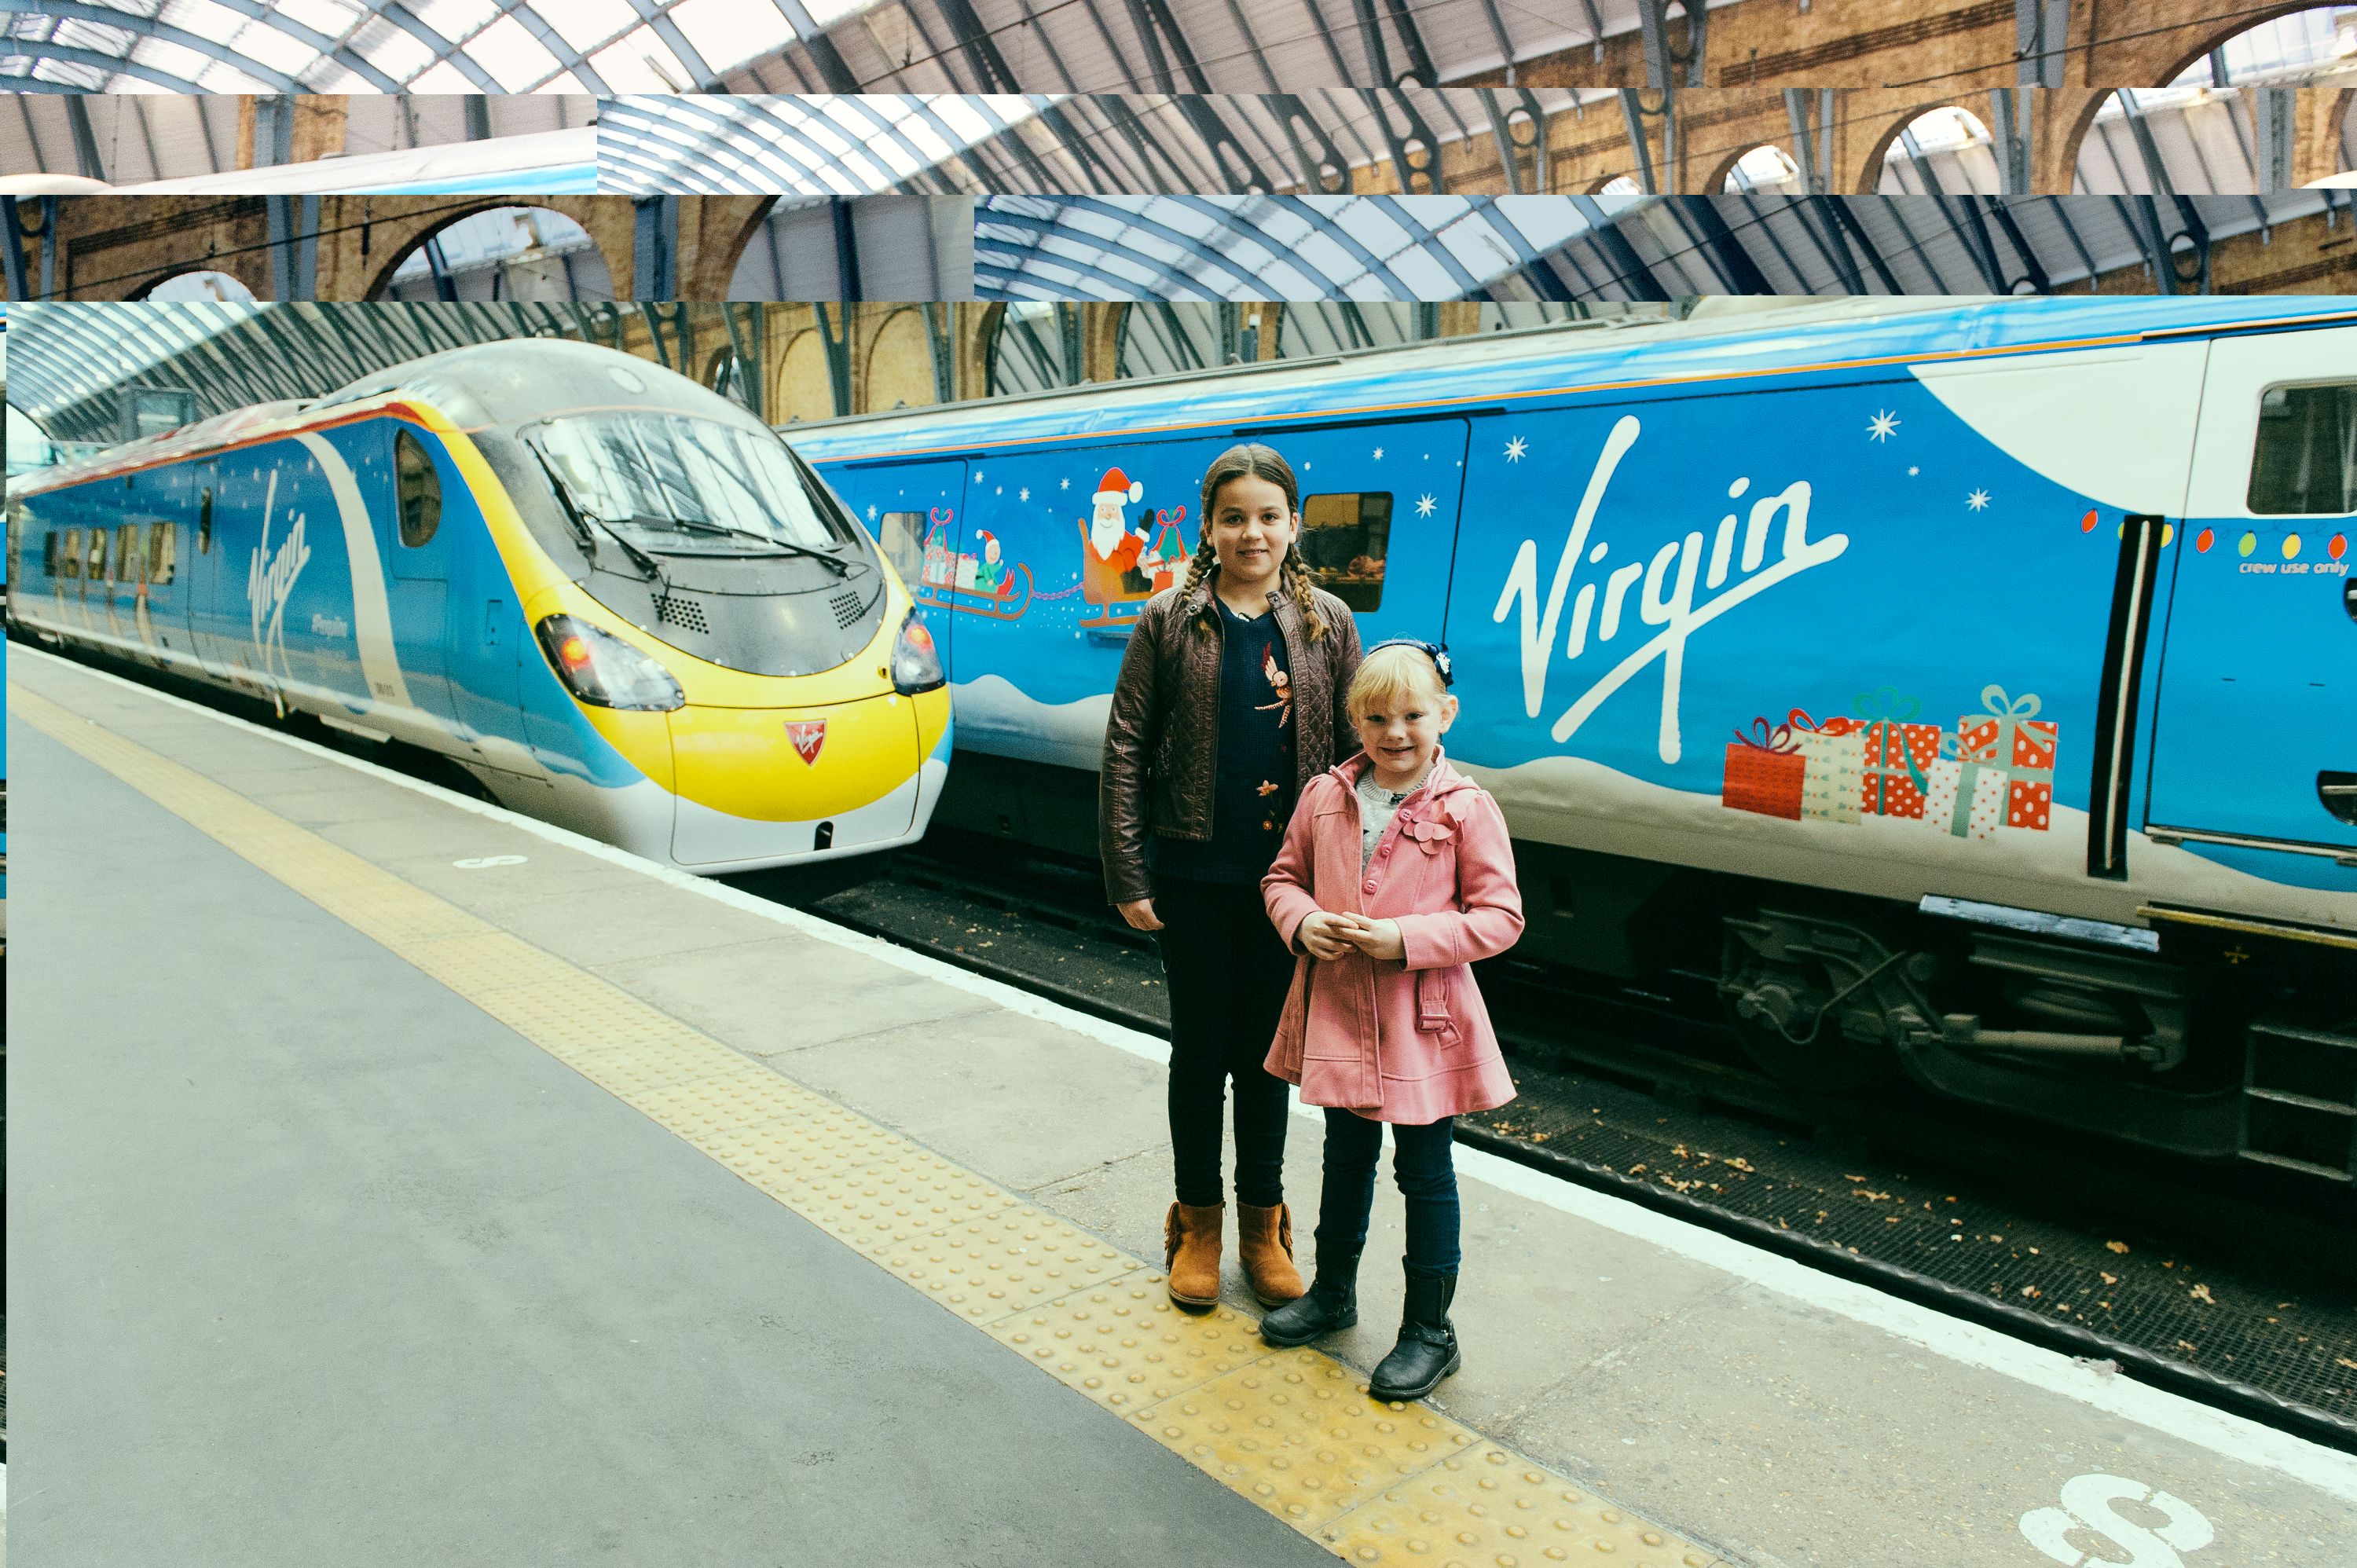 Virgin Trains gets commuters in the festive mood